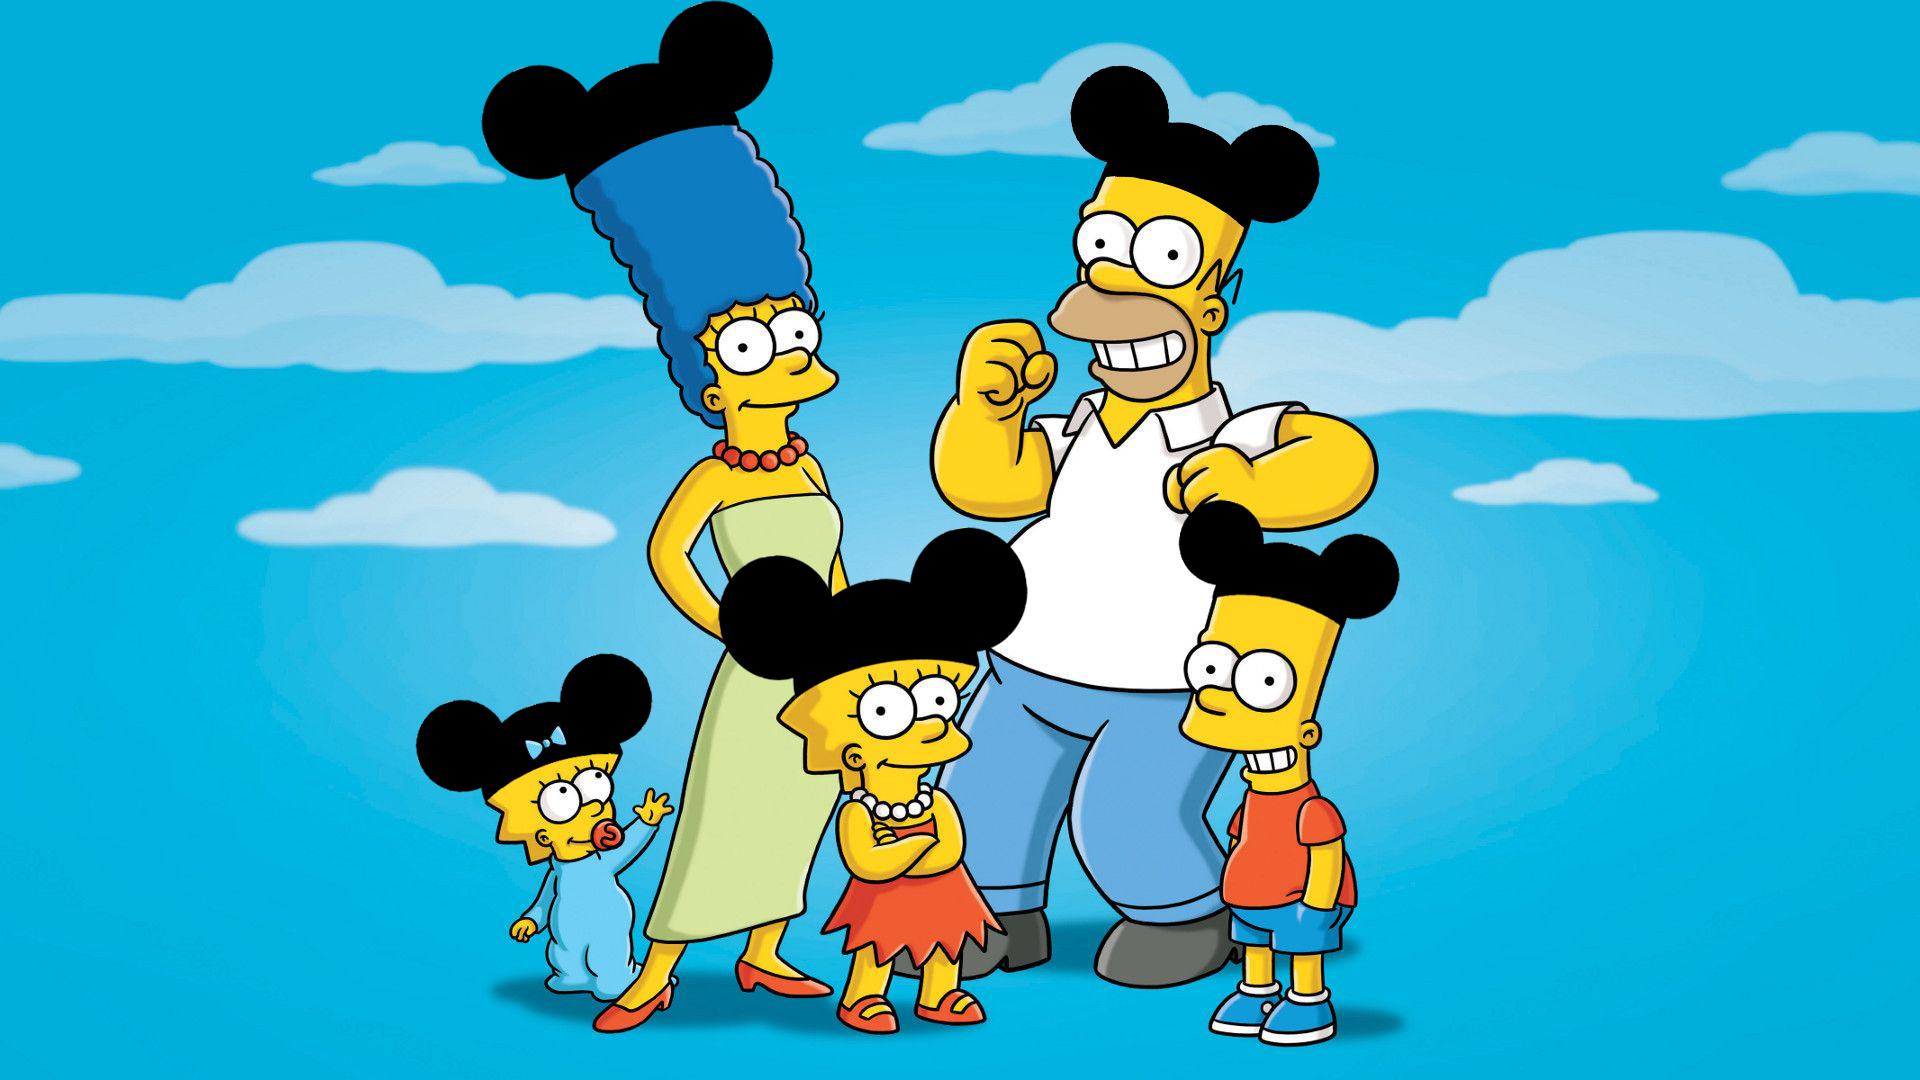 The Simpsons with Mickey Mouse's ears by Arthony70100 on DeviantArt